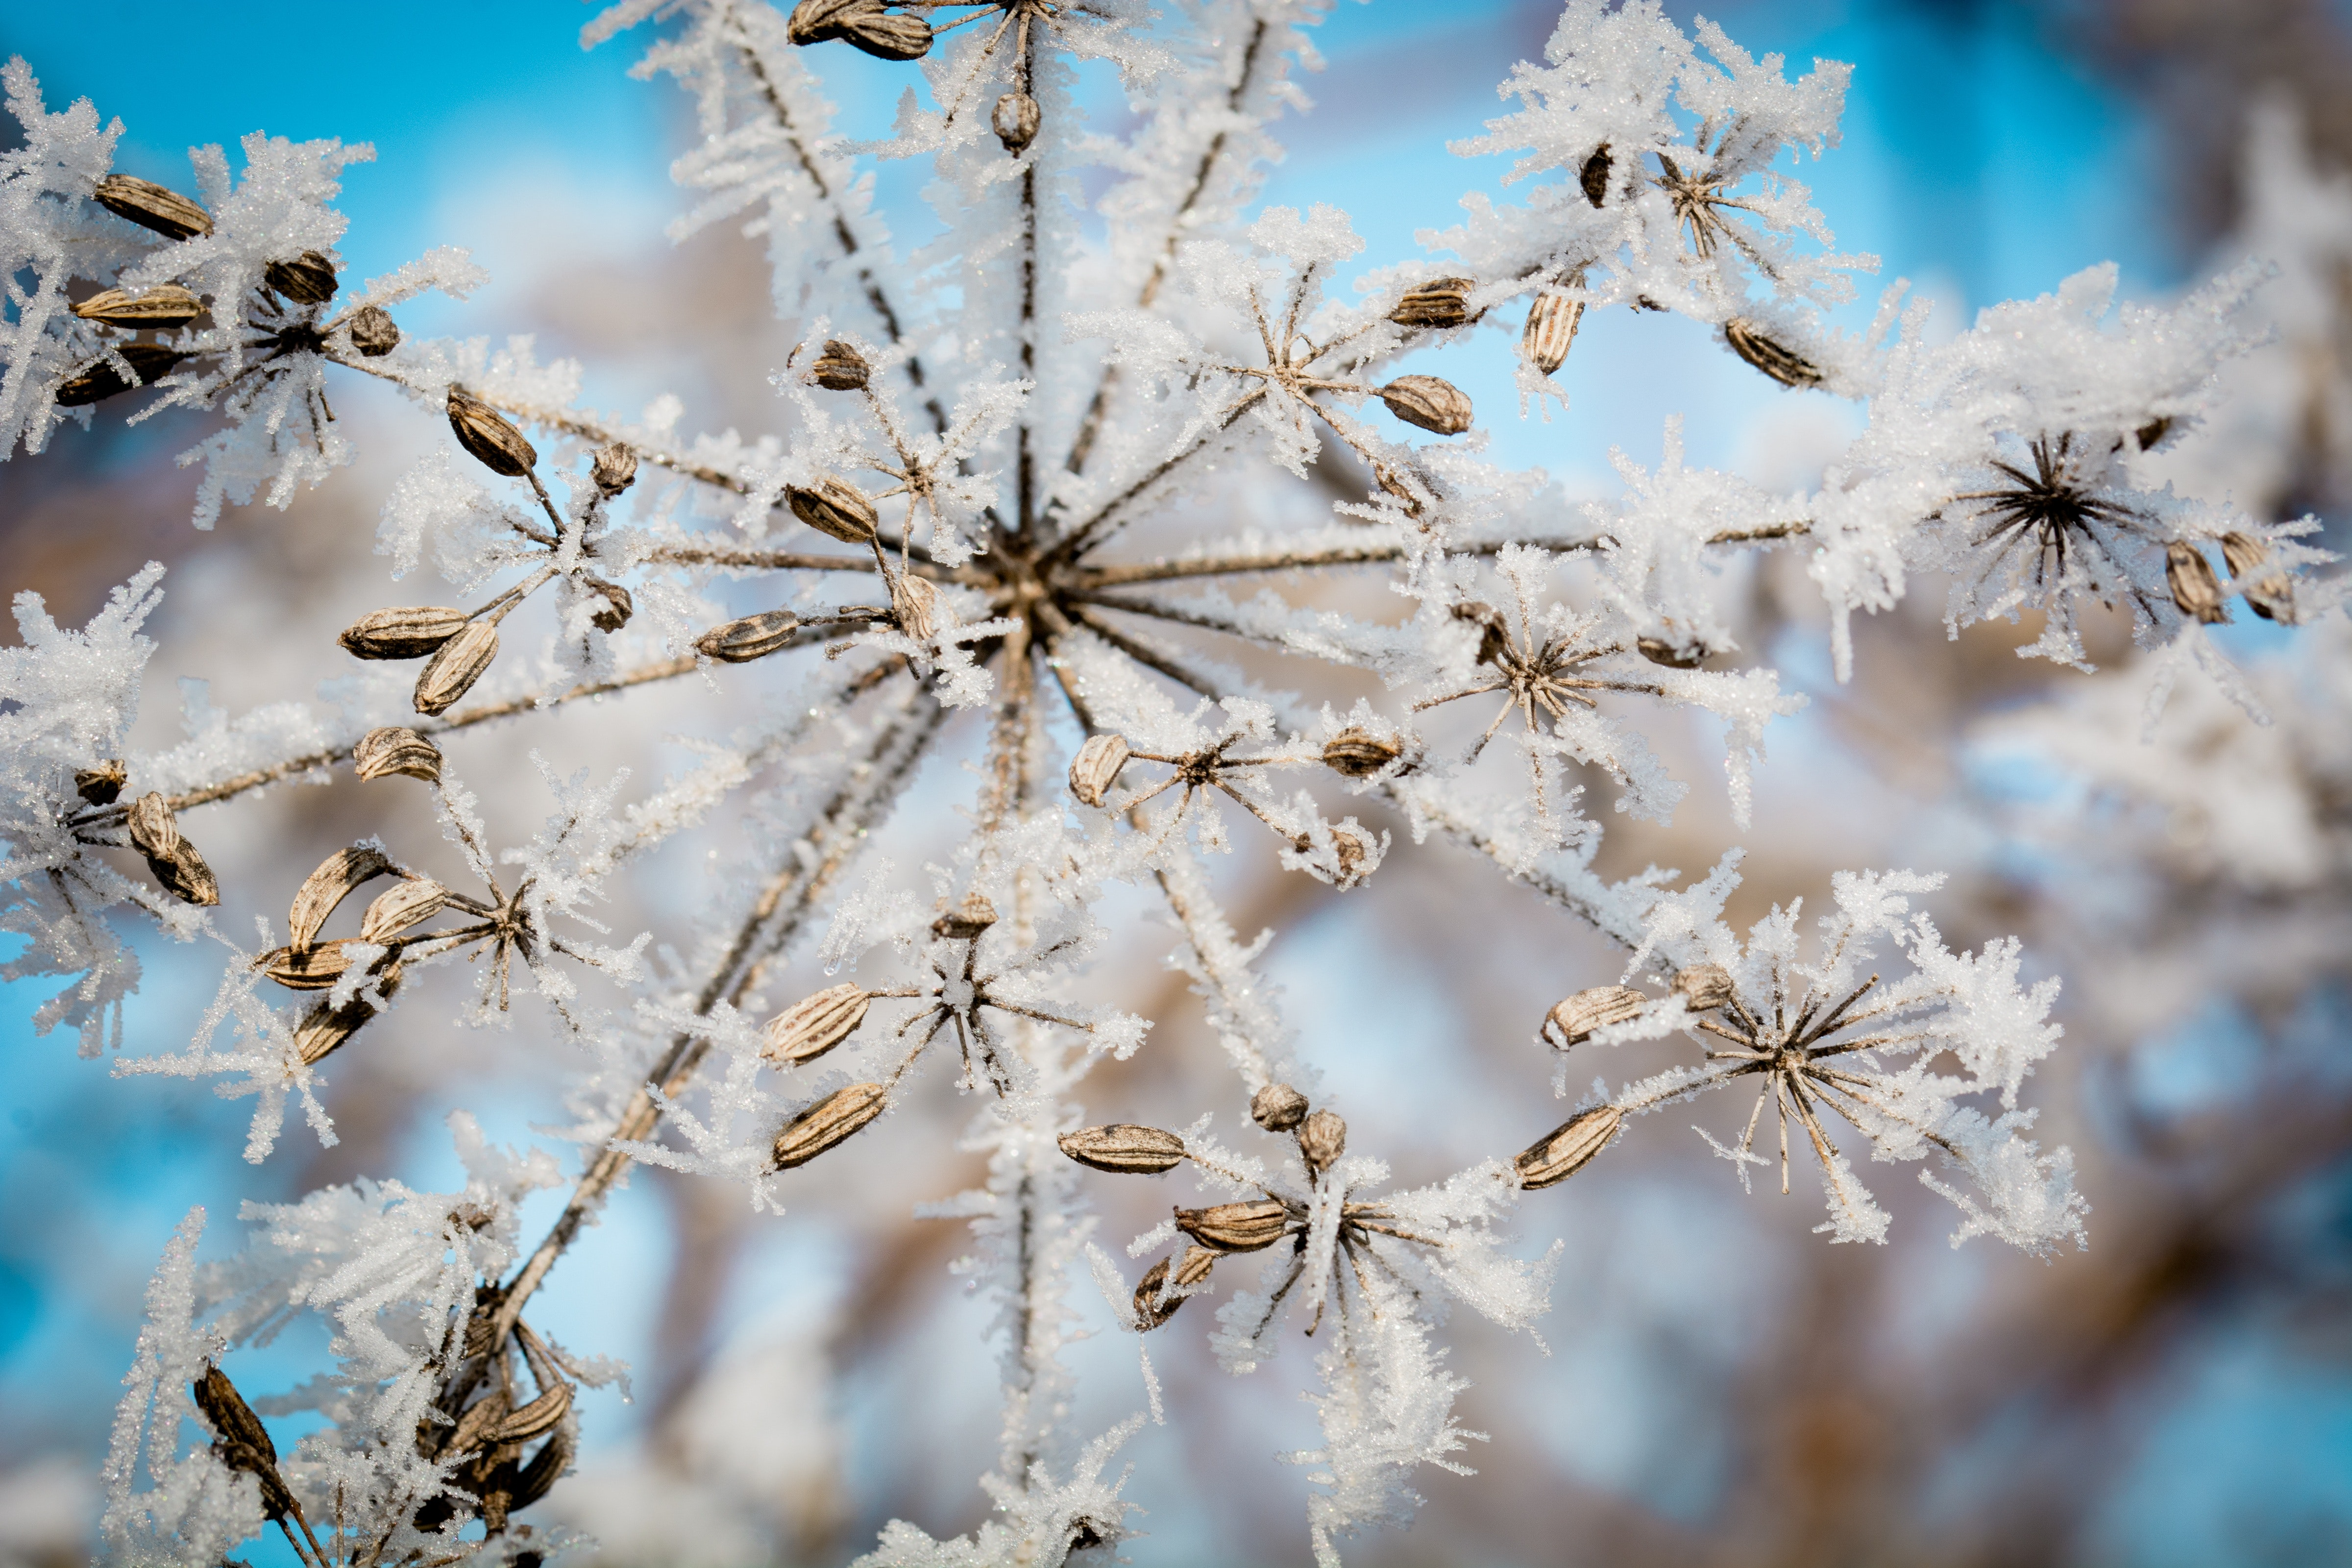 Close Up Photography Of Snowflake 183 Free Stock Photo